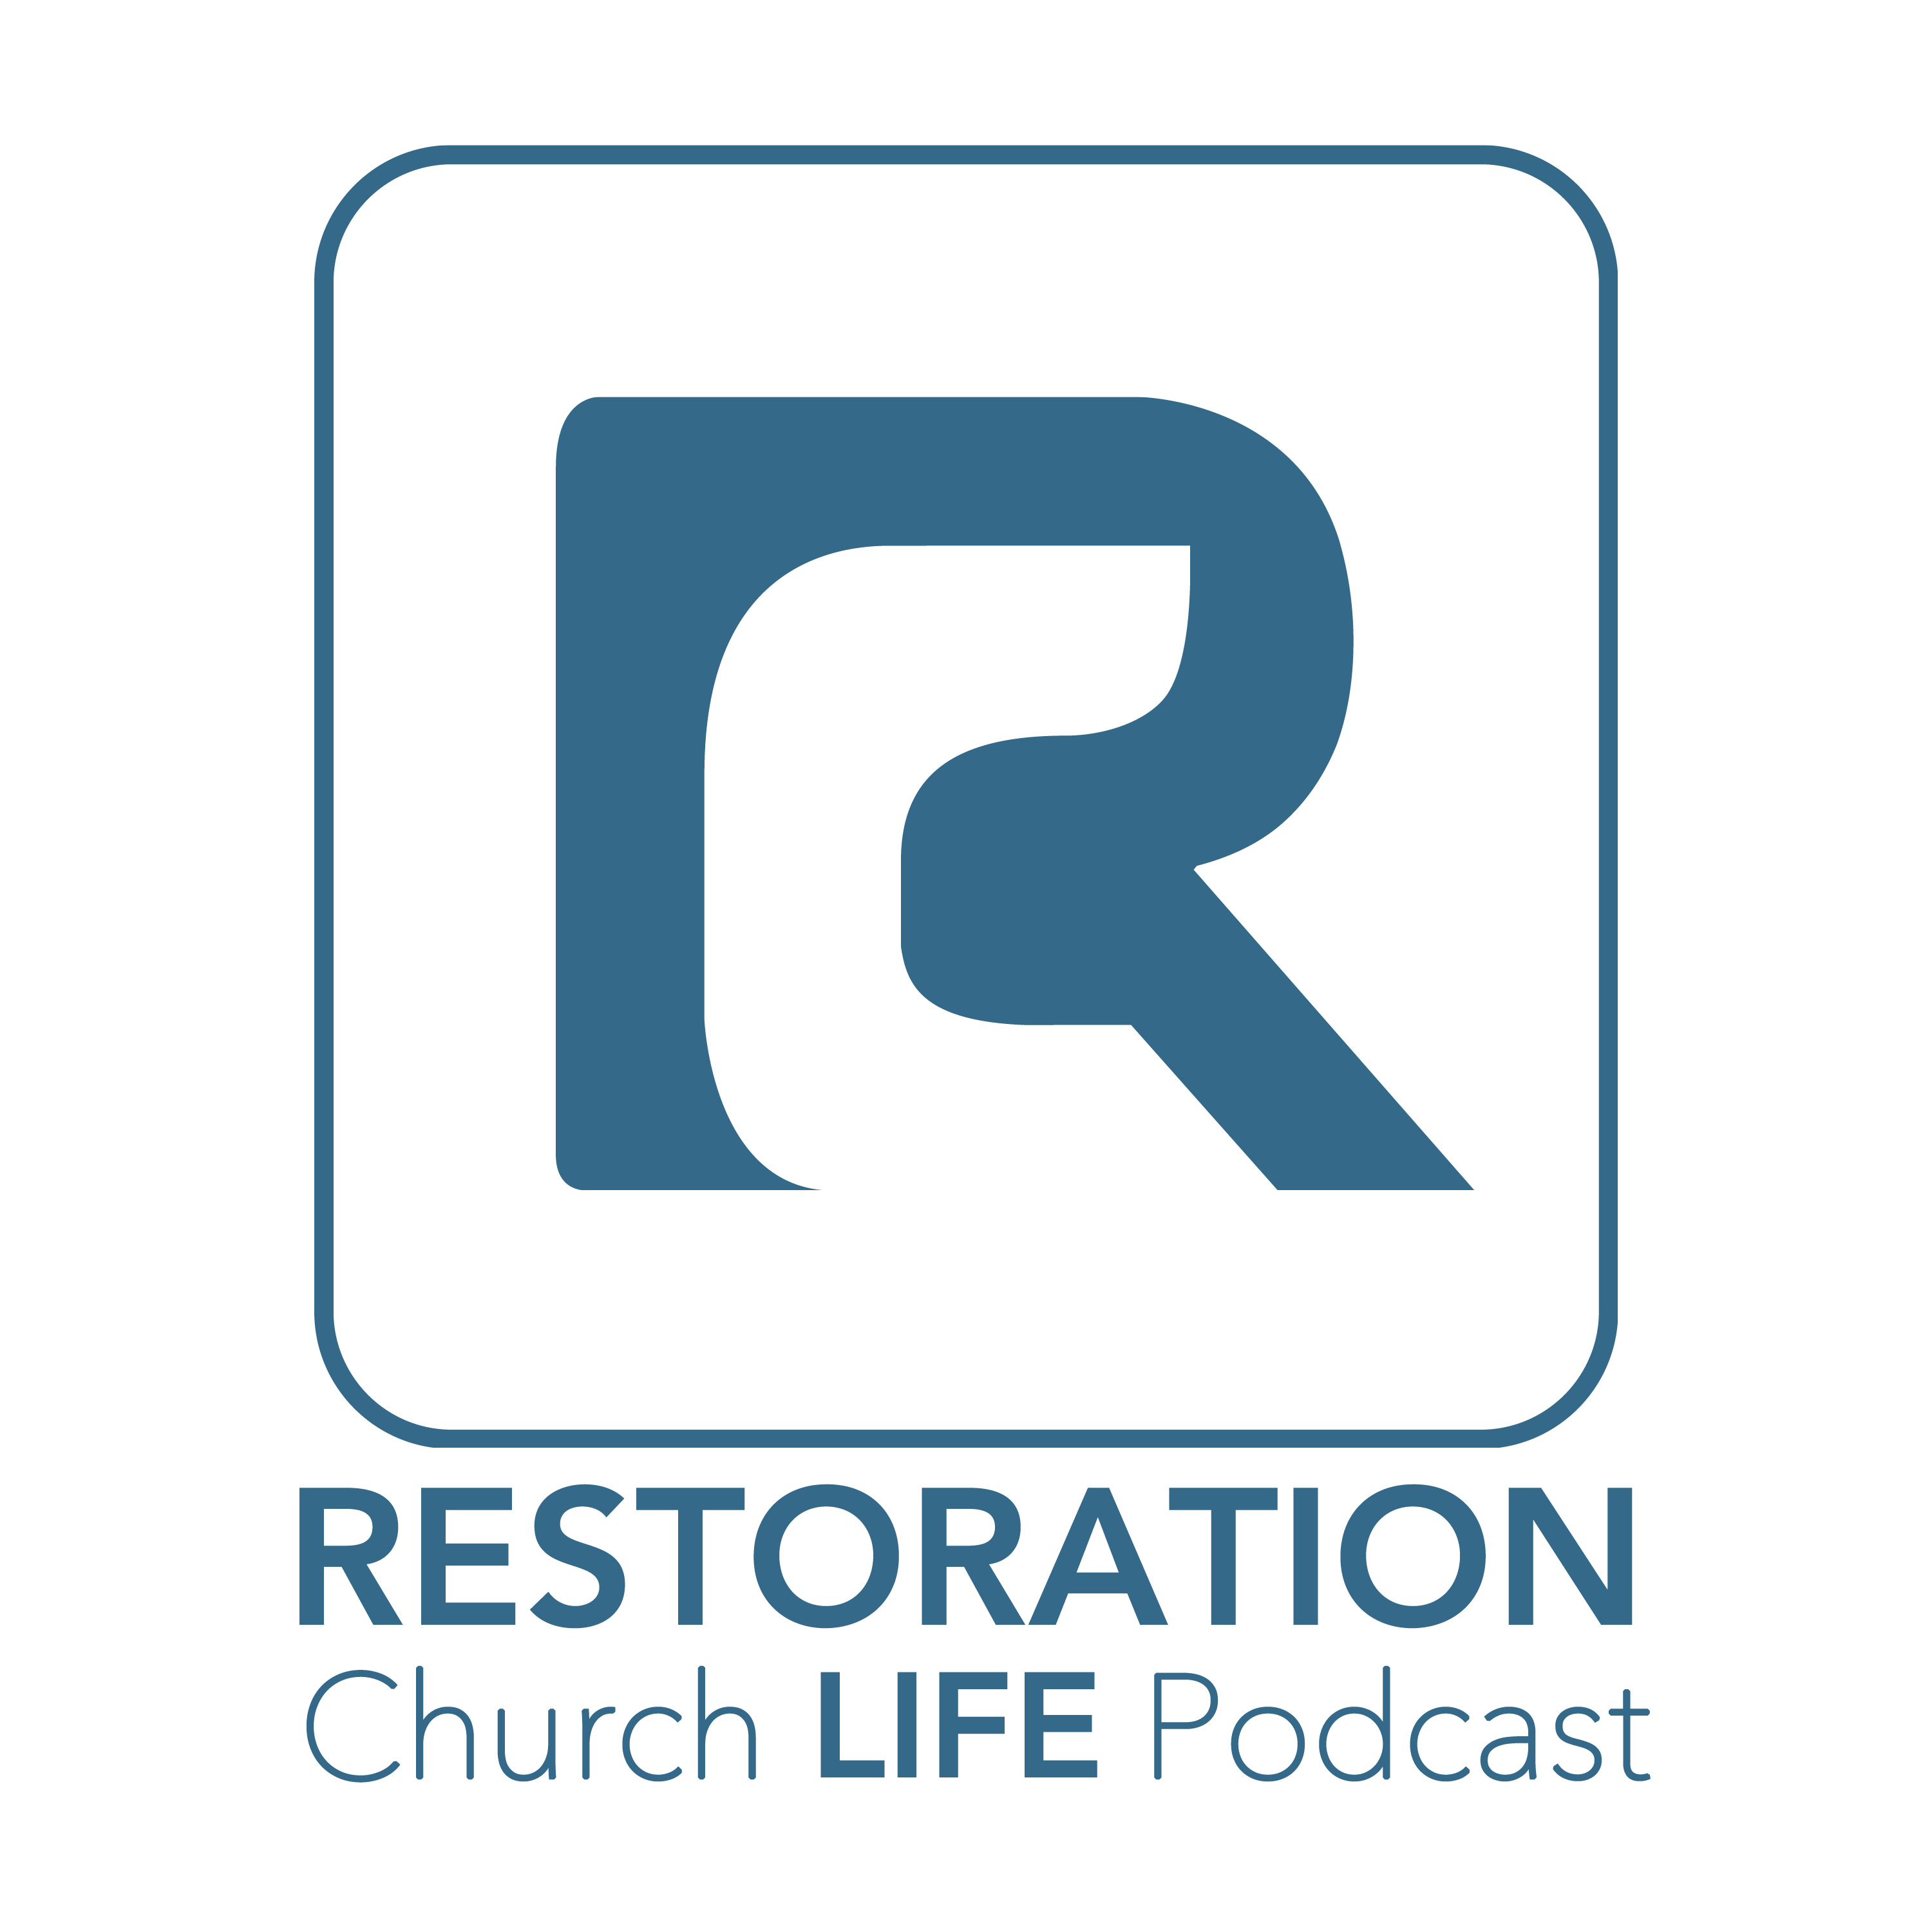 Restoration Church Life Podcast